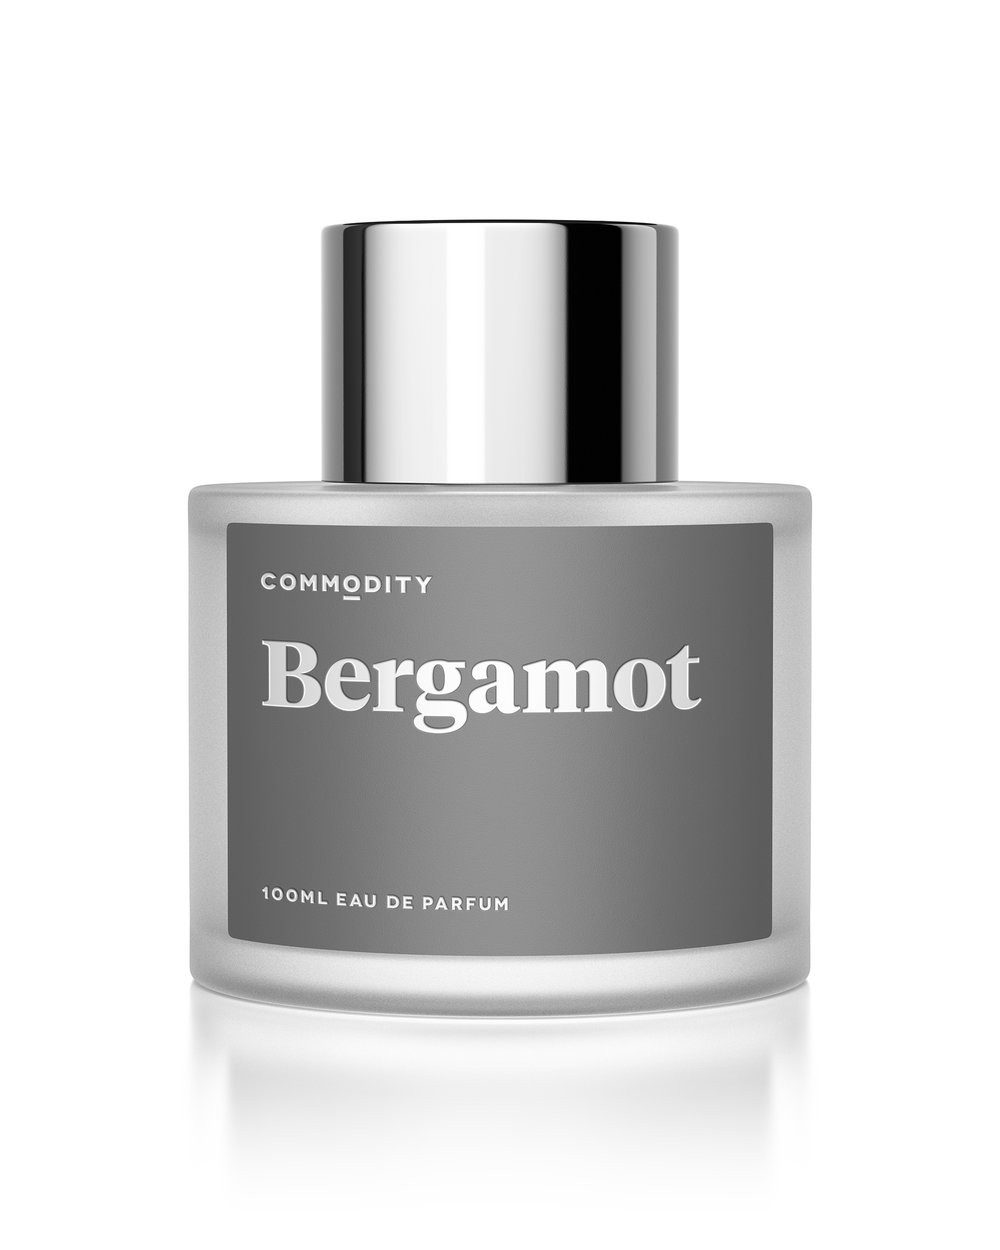 COMMODITY BERGAMOT 100ml.jpg